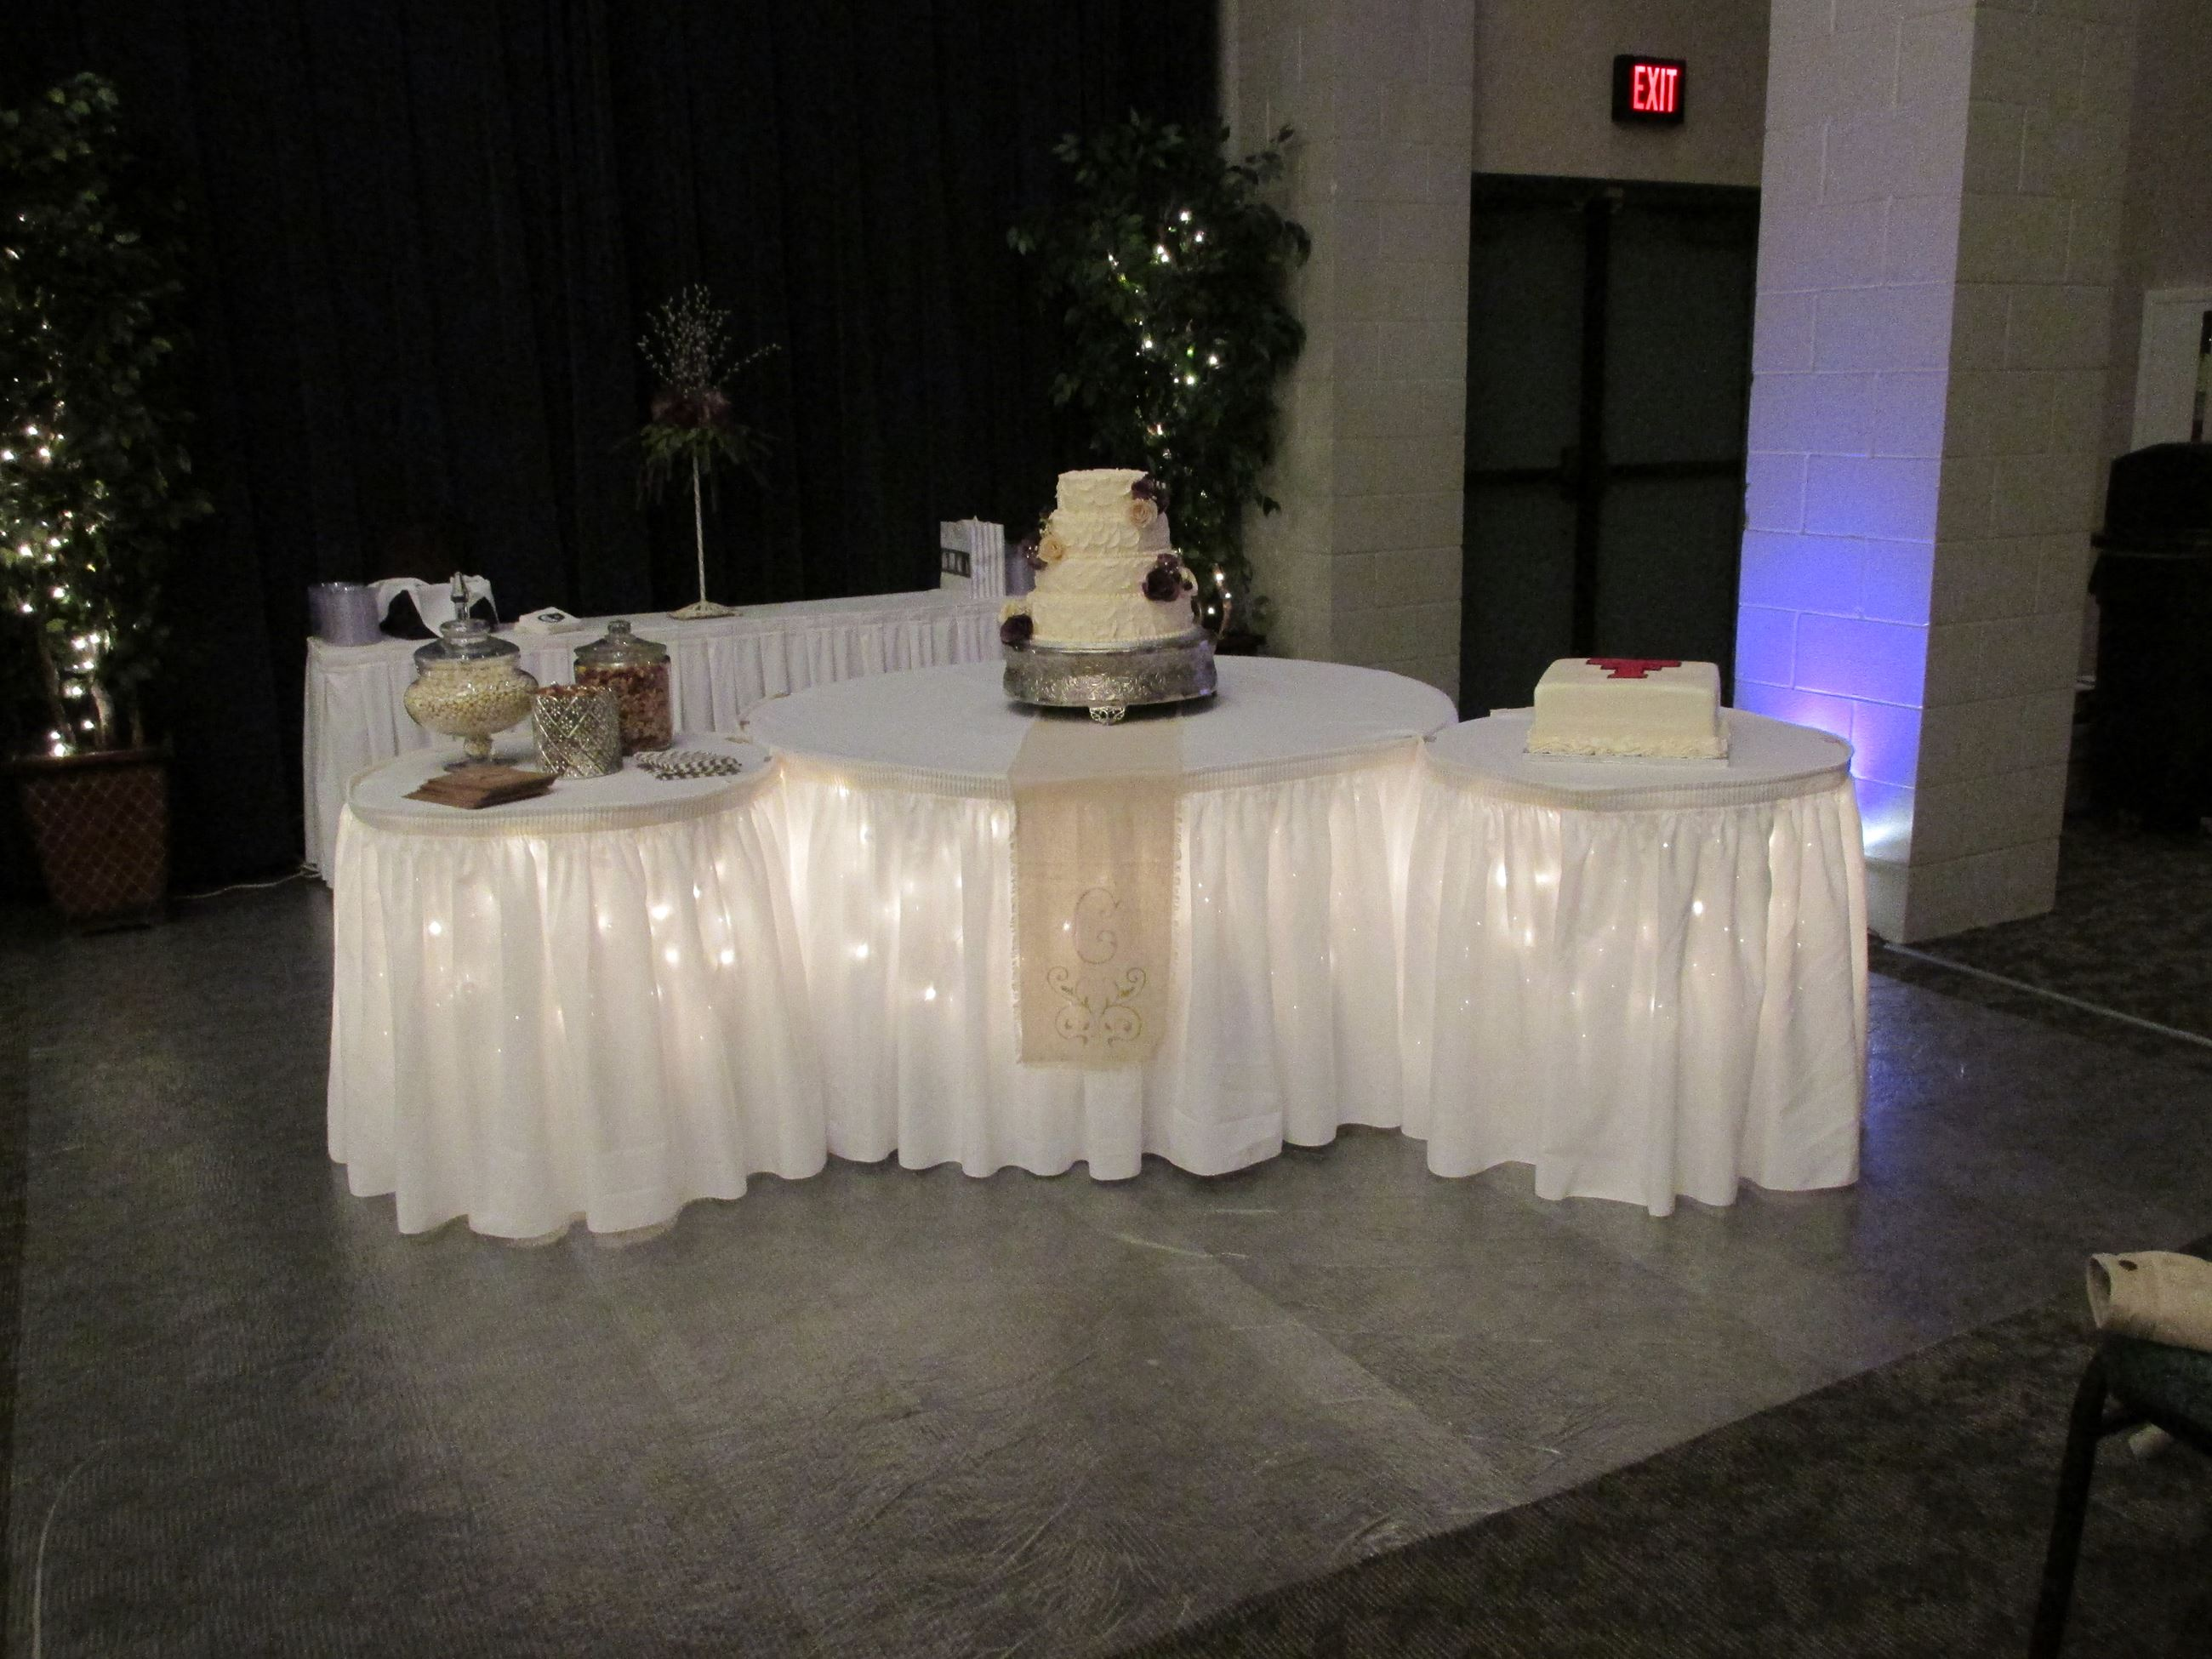 Lighted Cake Table